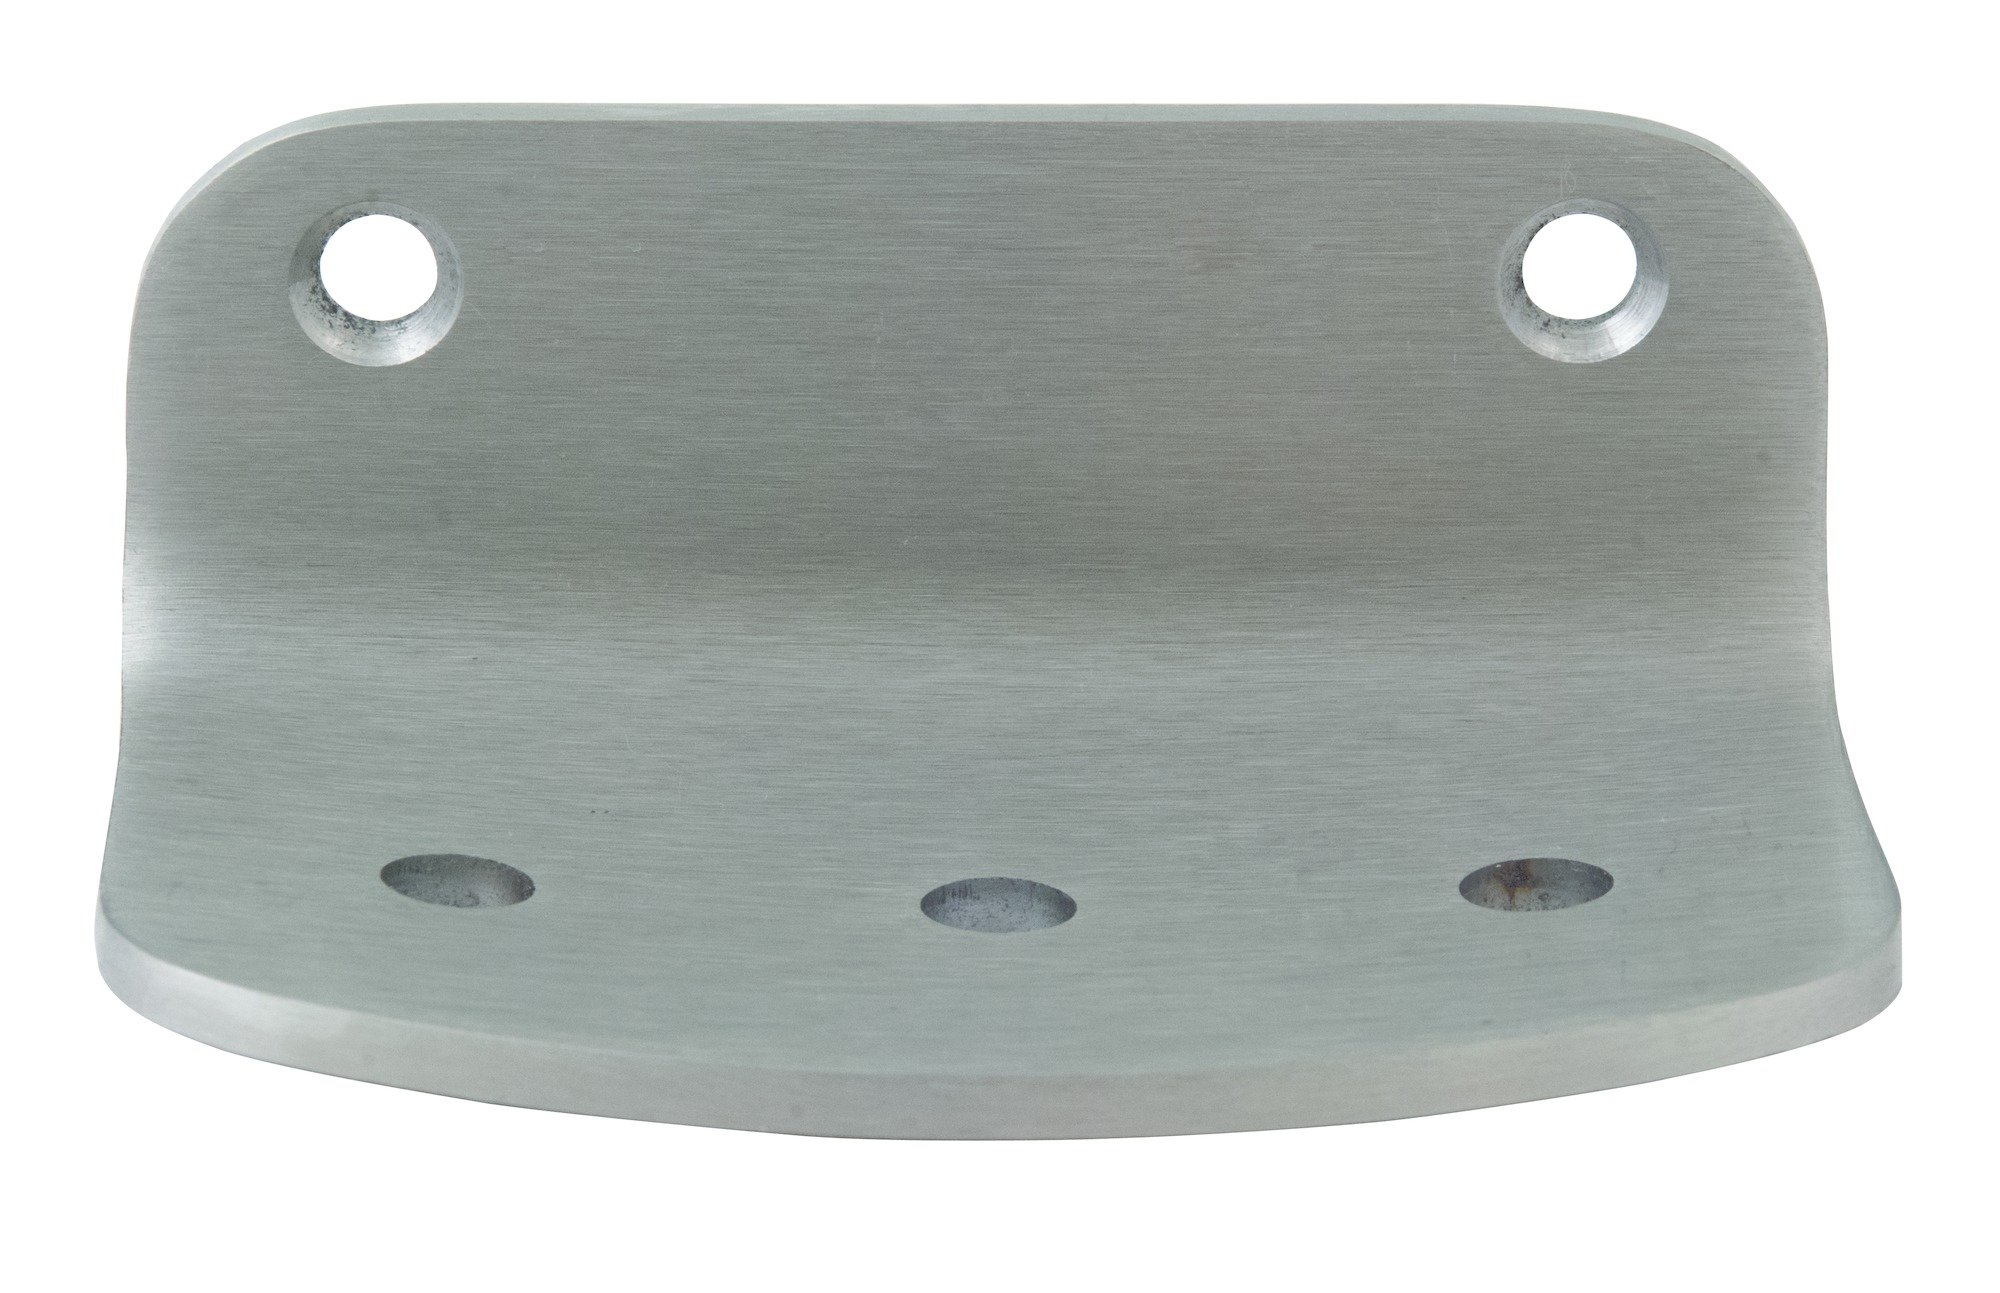 Soap Dish With Drainage Holes 900 | Accurate Door & Hardware, Inc.